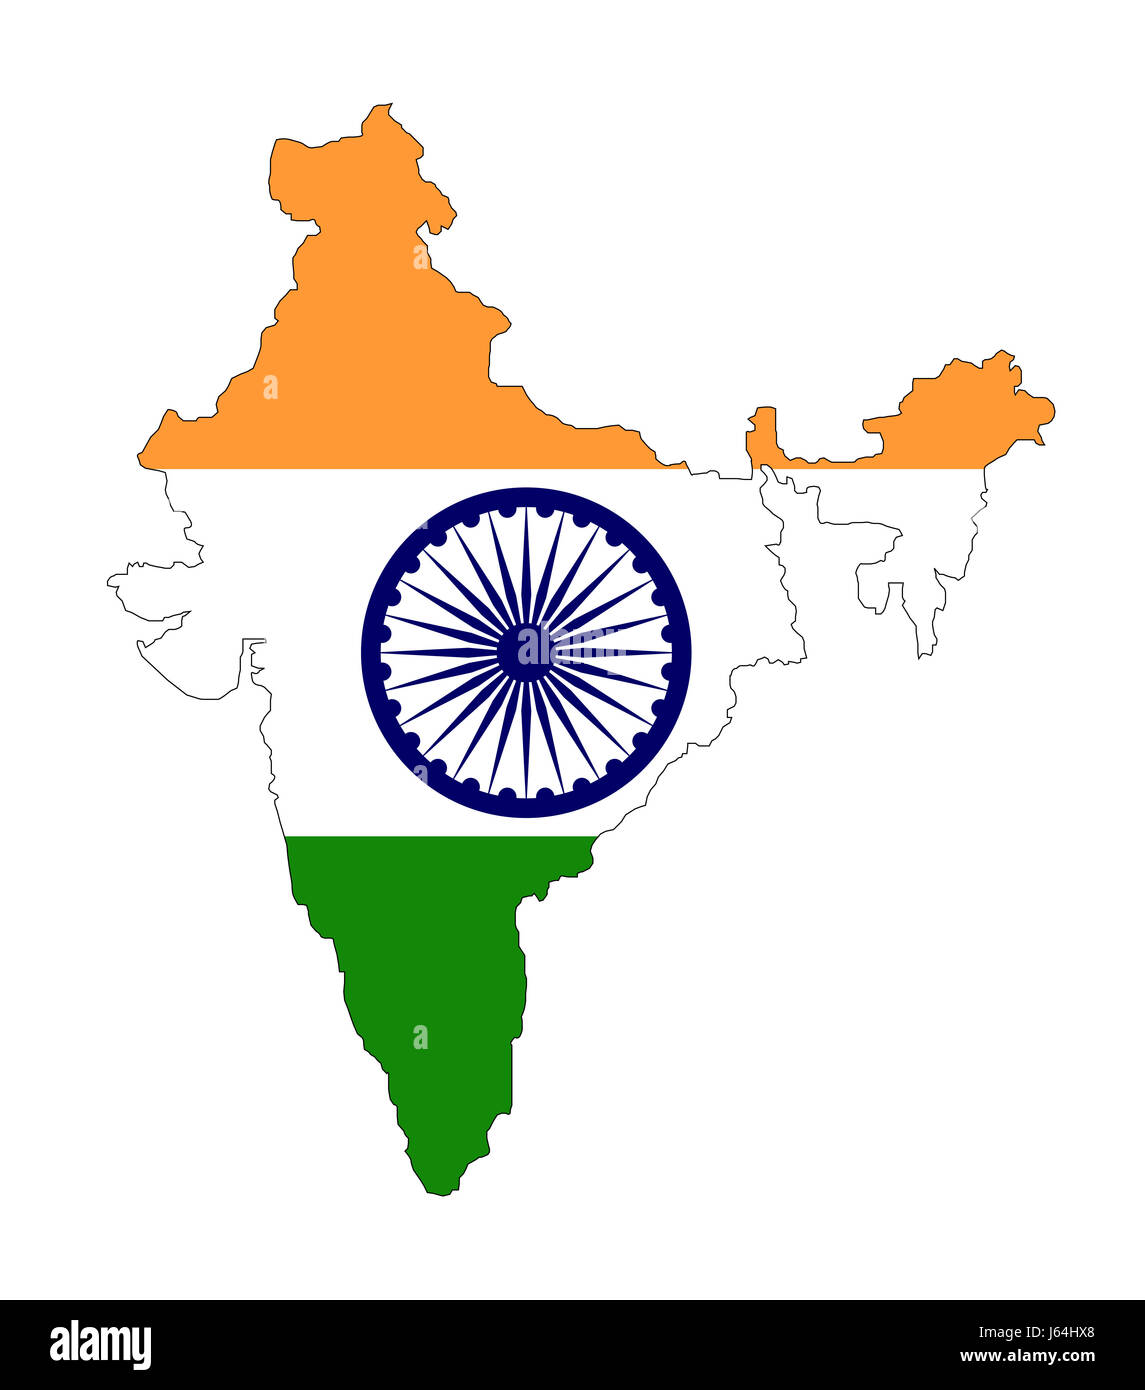 Asia india flag map atlas map of the world asia india flag geography asia india flag map atlas map of the world asia india flag geography map atlas gumiabroncs Gallery